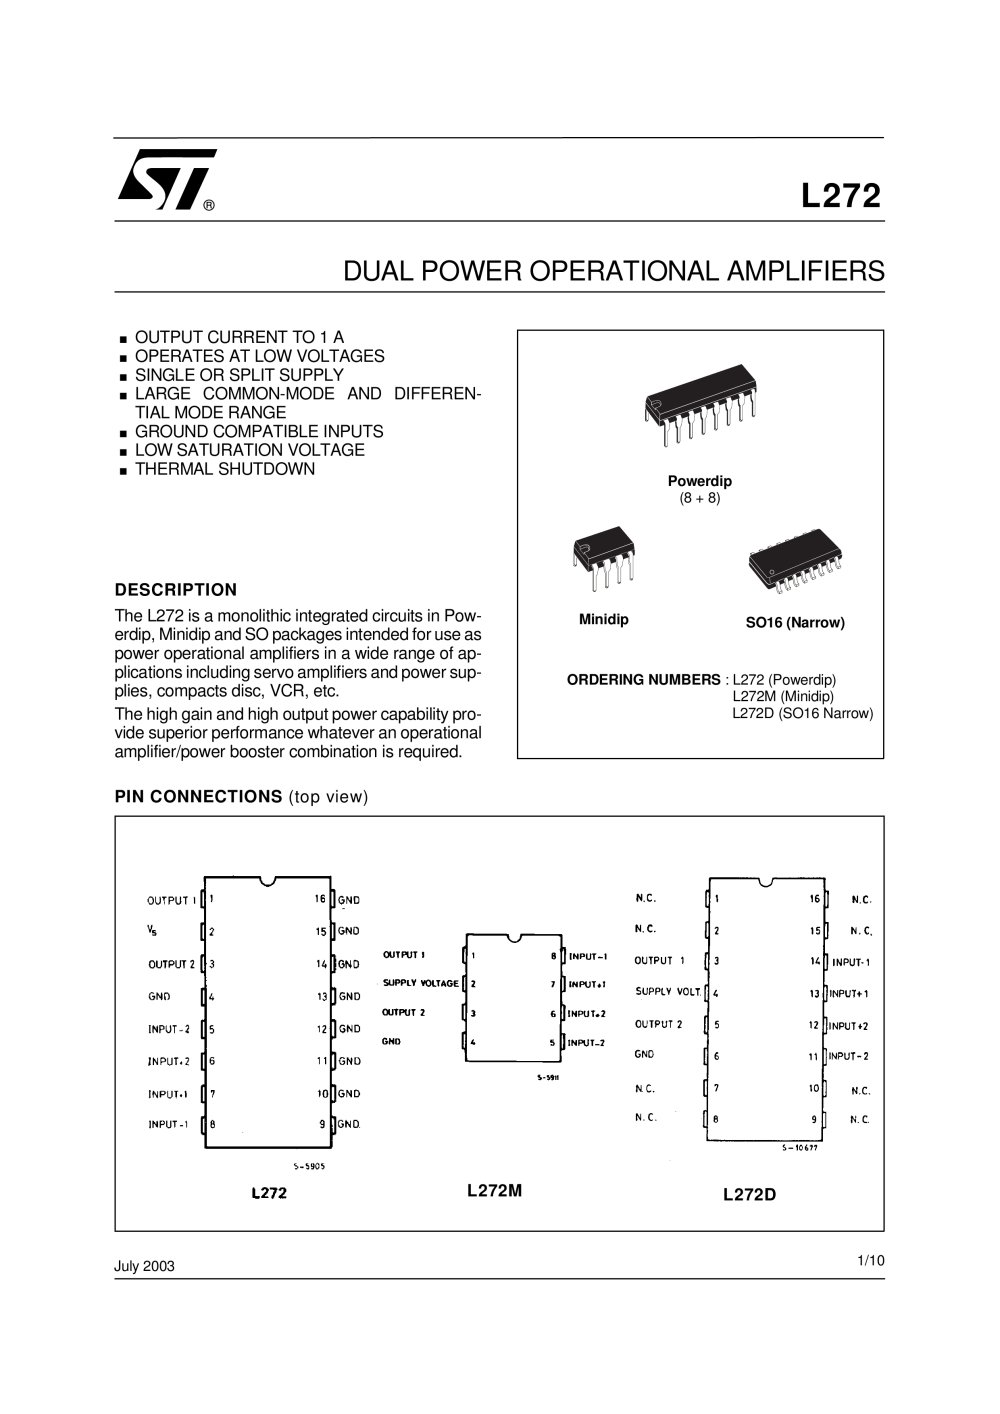 L272 Dual Power Operational Amplifier Stmicroelectronics Pdf Highcurrentamplifierwithrailtorailoutput Amplifiercircuit 1 10 Pages